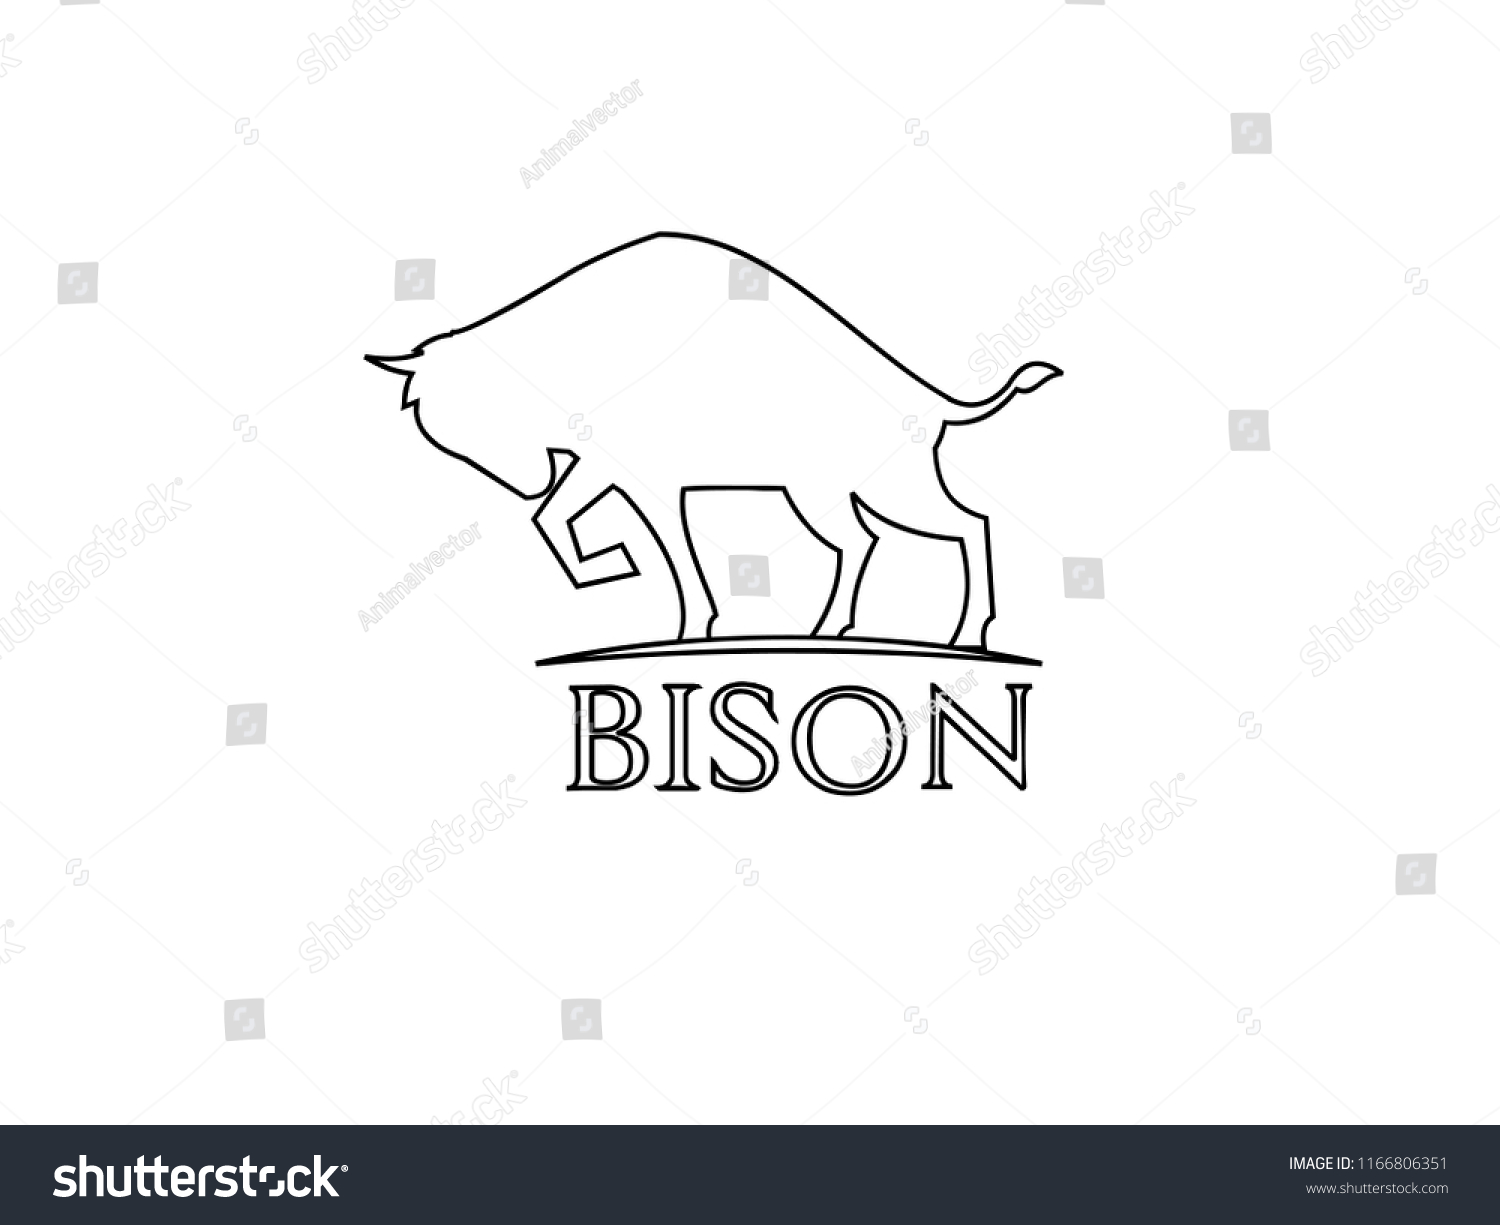 Bison Outline Logo Icon Designs Stock Vector (Royalty Free